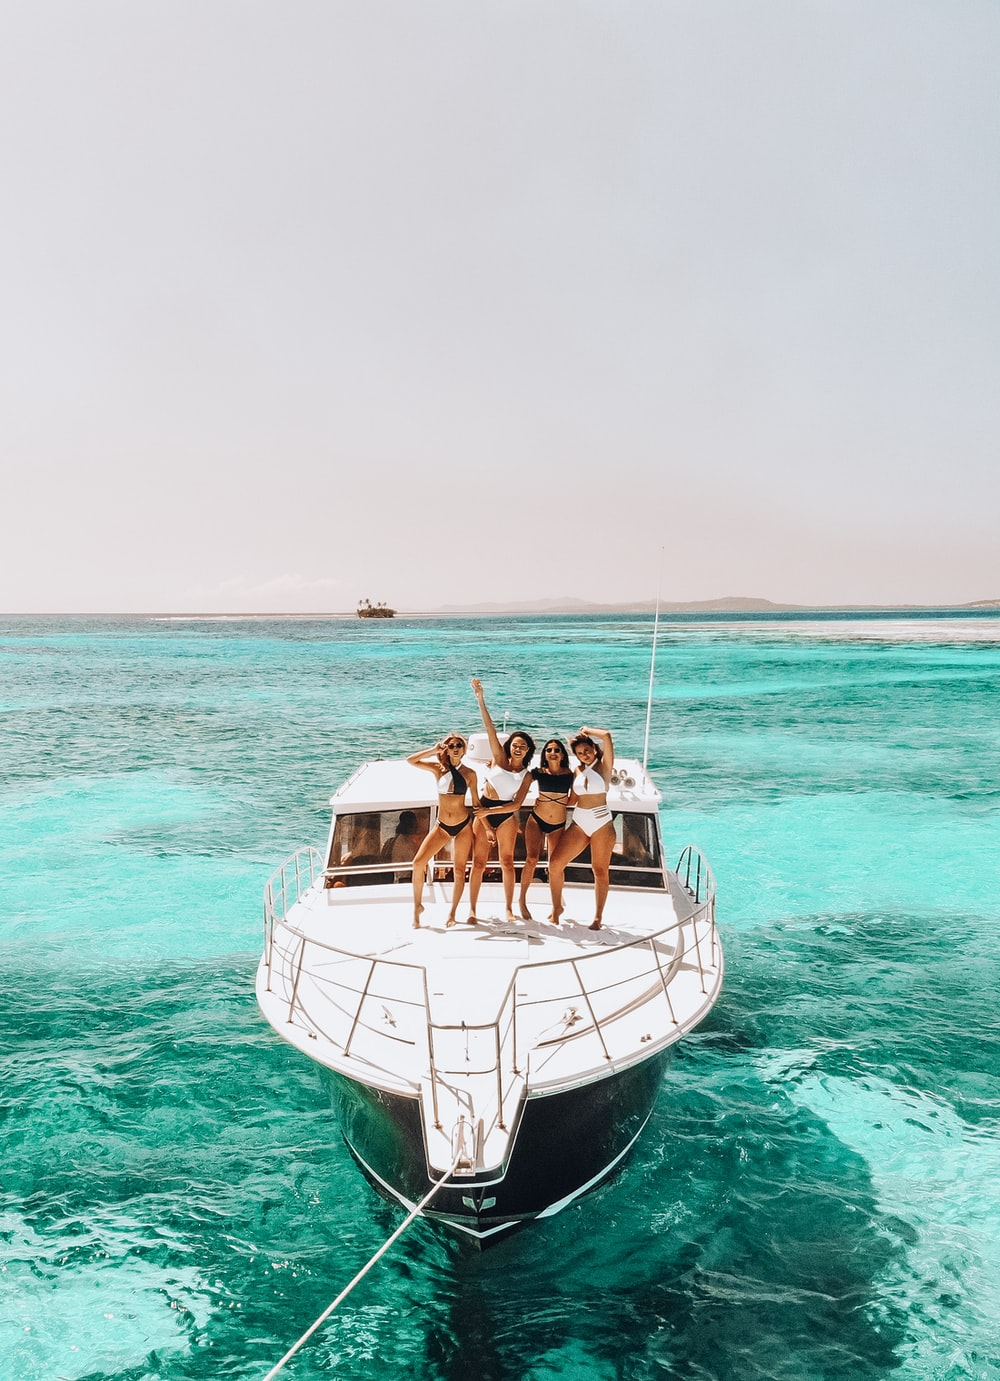 500+ Yacht Pictures | Download Free Images on Unsplash